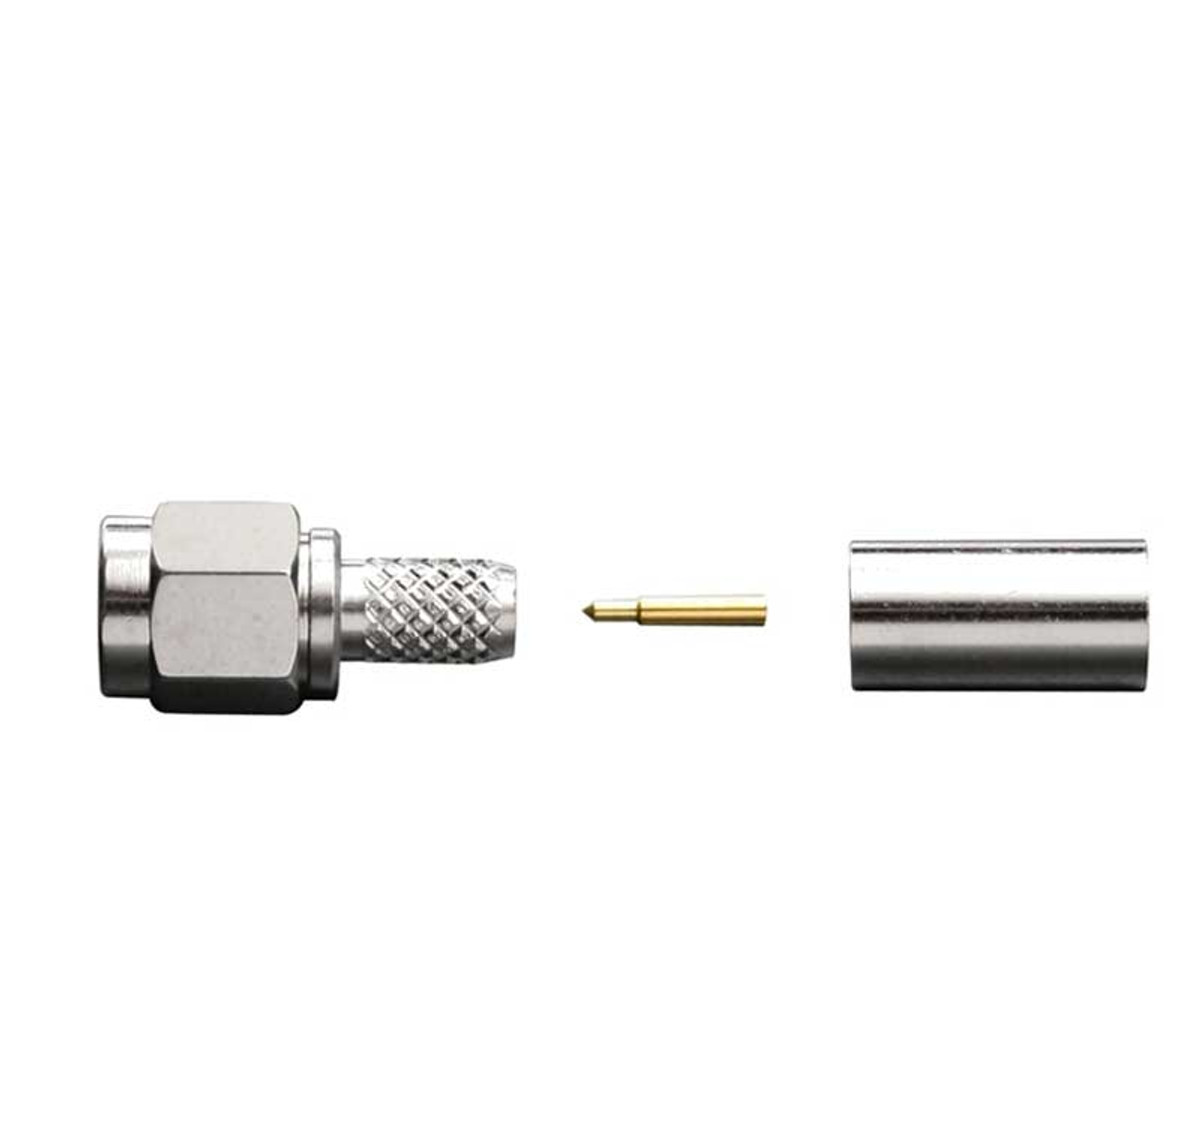 Wilson 971131 SMA Male to RG58 Crimp Connector, detail